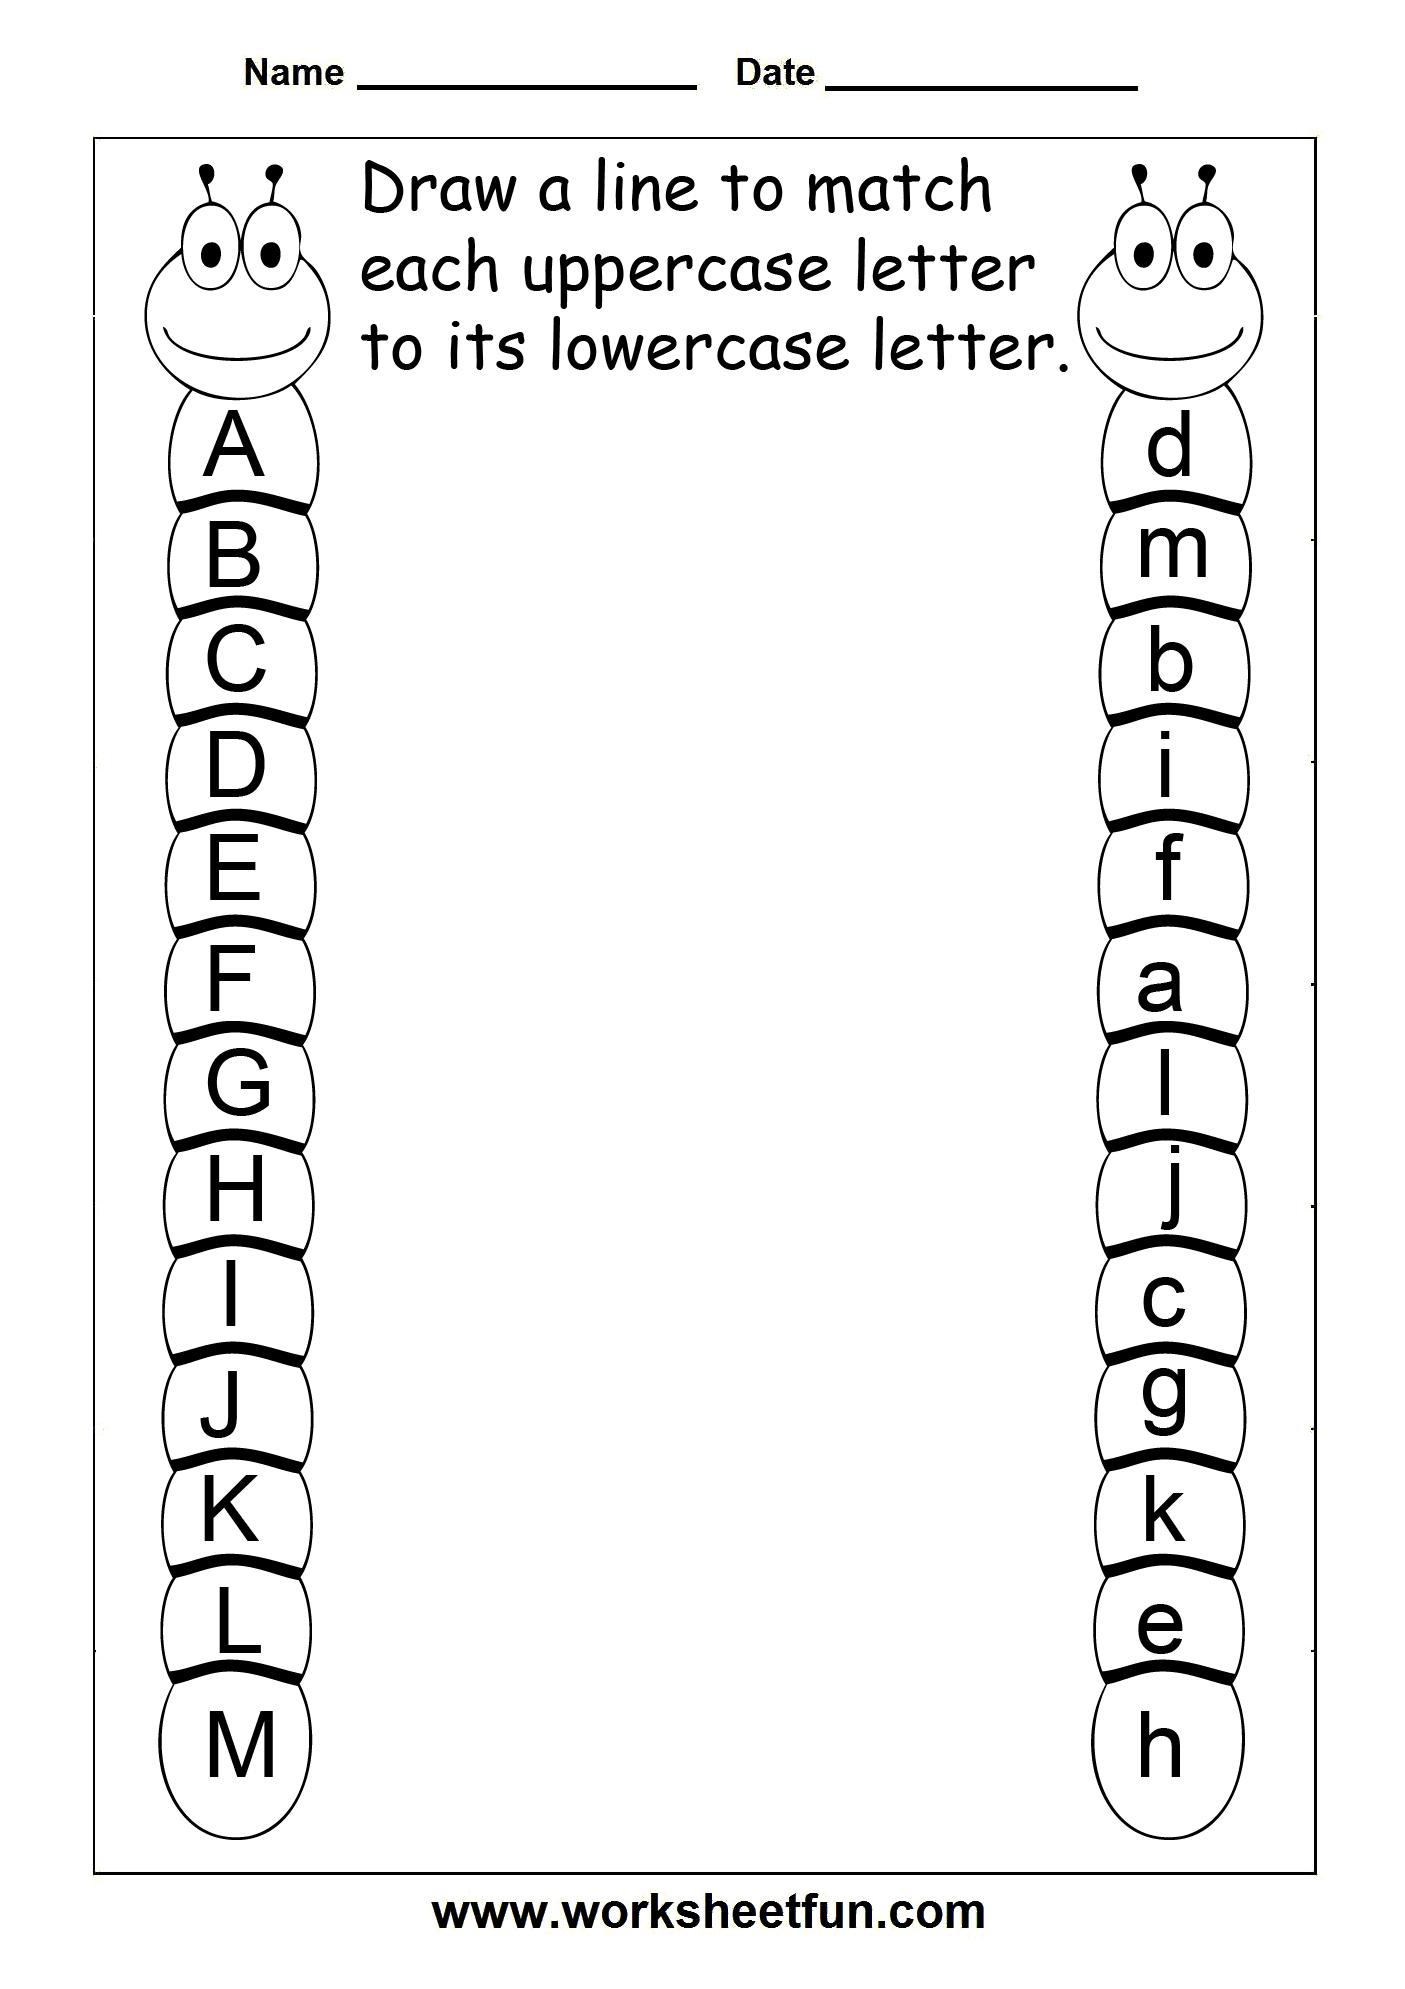 Weirdmailus  Unusual  Images About Work Worksheet On Pinterest  Hidden Pictures  With Fascinating  Images About Work Worksheet On Pinterest  Hidden Pictures Color By Numbers And Puzzles With Enchanting Ratio Worksheet Pdf Also Percent Problems Worksheet In Addition Chemistry Balancing Equations Worksheet And Transversal Worksheet As Well As Chemistry Unit  Worksheet  Answer Key Additionally Pre K Printable Worksheets From Pinterestcom With Weirdmailus  Fascinating  Images About Work Worksheet On Pinterest  Hidden Pictures  With Enchanting  Images About Work Worksheet On Pinterest  Hidden Pictures Color By Numbers And Puzzles And Unusual Ratio Worksheet Pdf Also Percent Problems Worksheet In Addition Chemistry Balancing Equations Worksheet From Pinterestcom